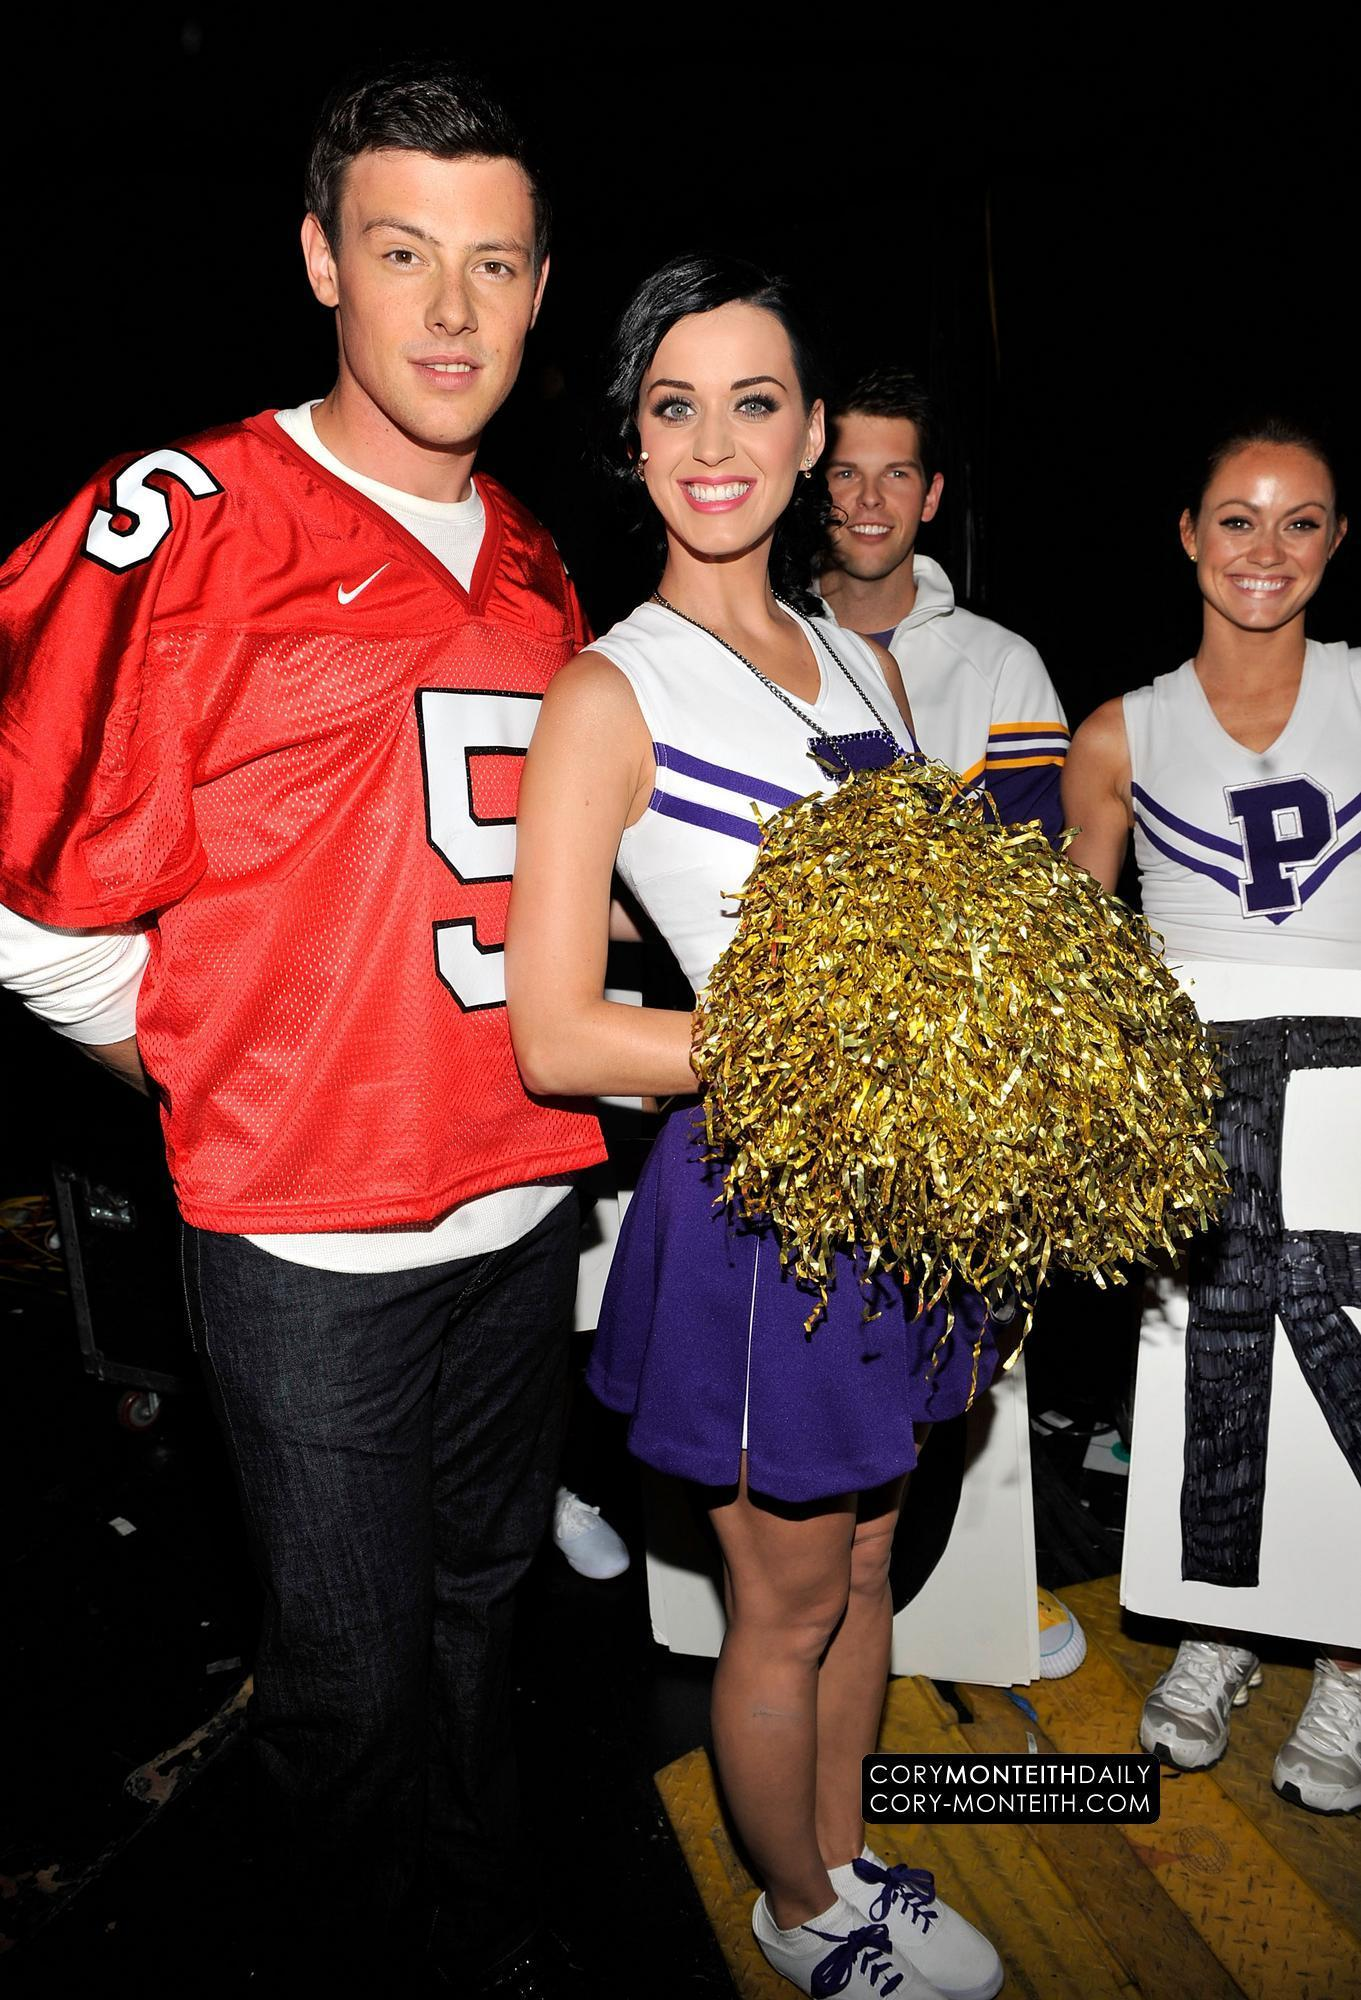 Cory @ 2010 Teen Choice Awards - Backstage